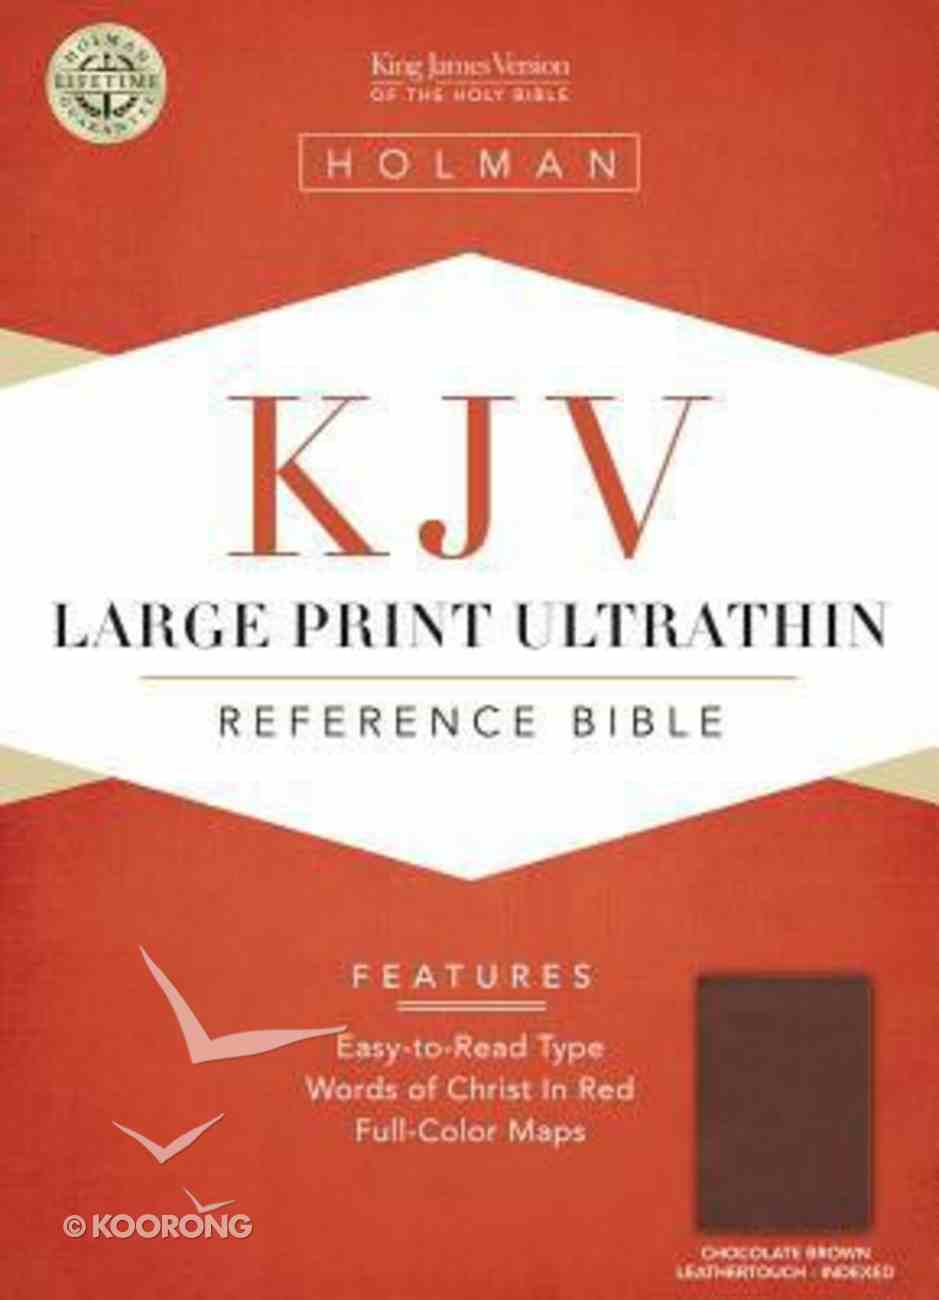 KJV Large Print Ultrathin Reference Bible Chocolate/Brown Indexed Imitation Leather